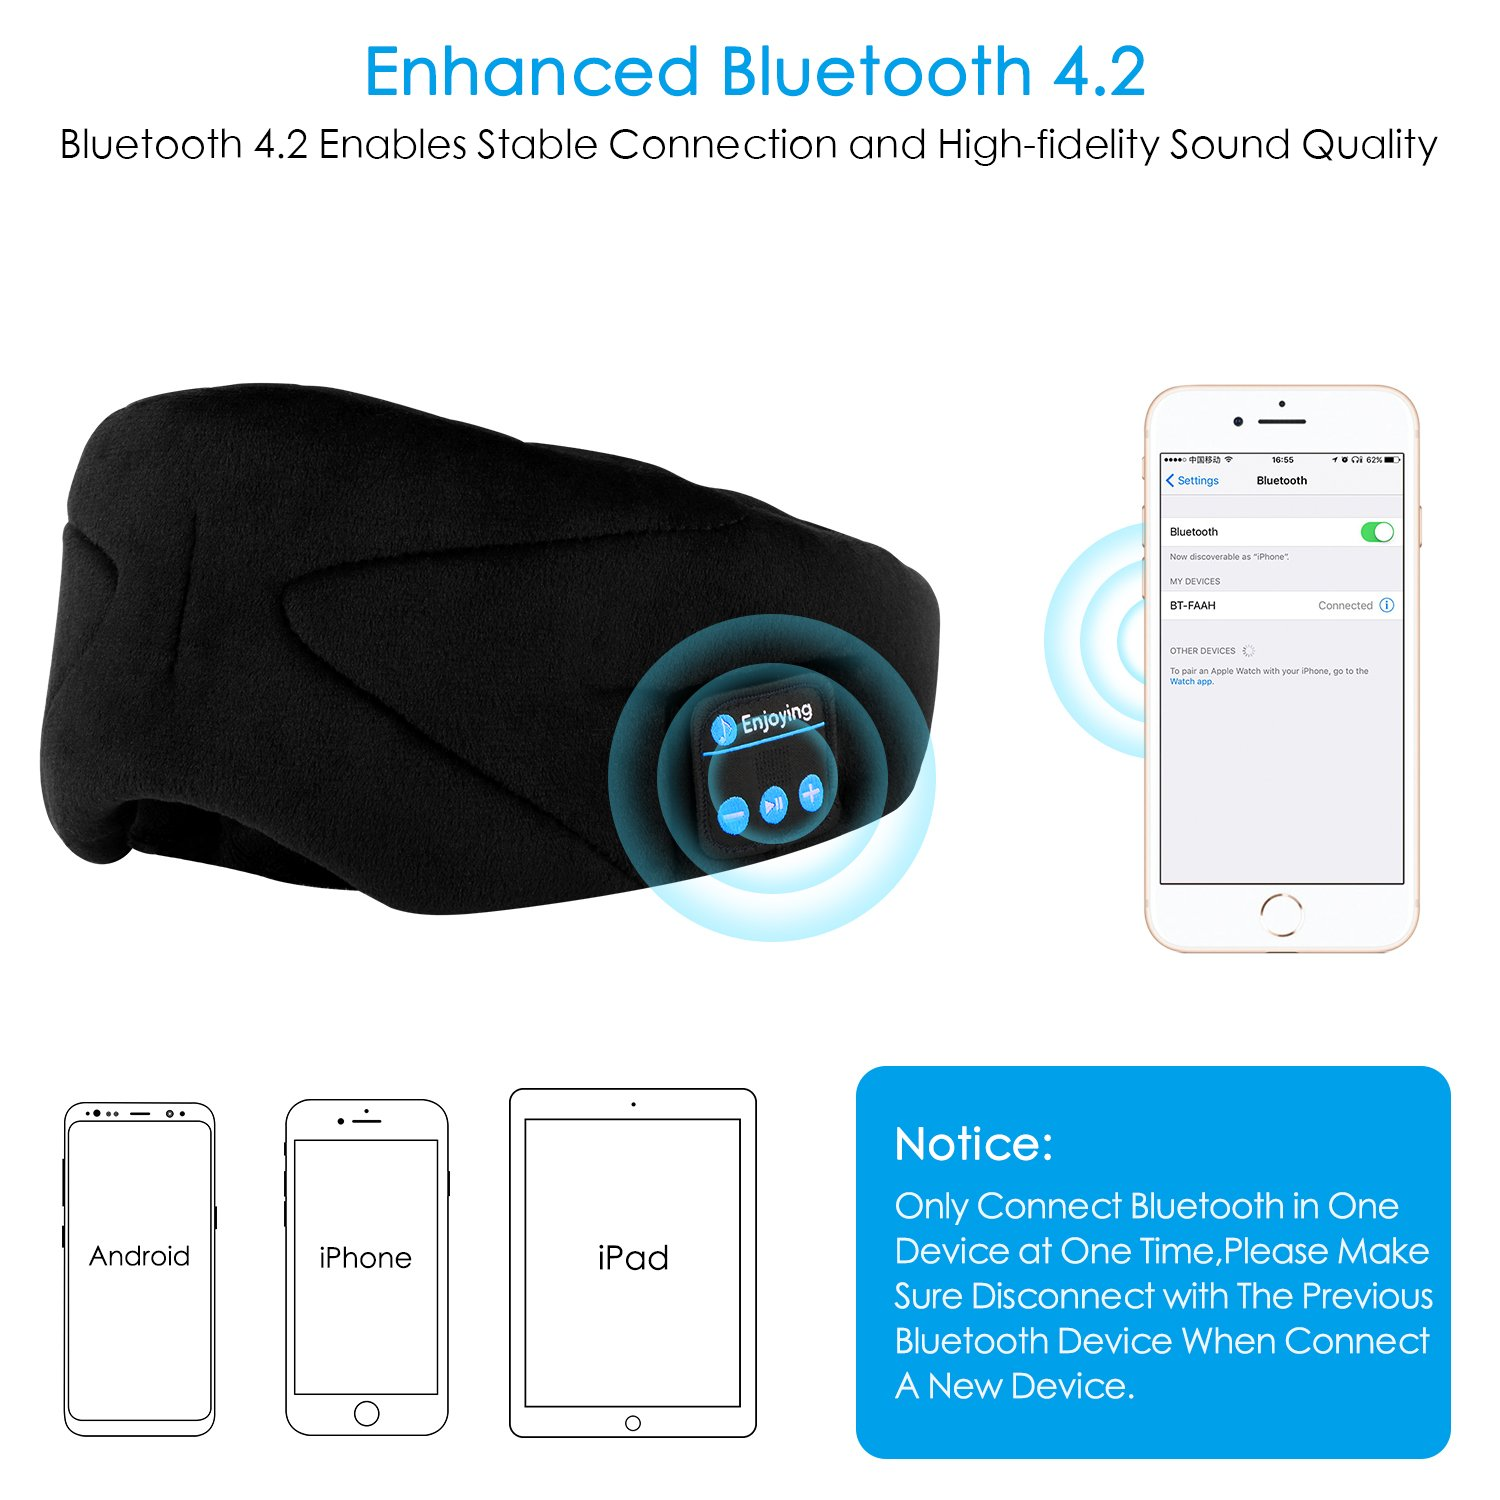 ink-topoint Bluetooth Sleep Eye Mask Headphones, Sleeping Eye Shades Bluetooth 4.2 Music Headset Wireless Sleep Mask with Built-in Speaker Washable for Traveling Relaxing